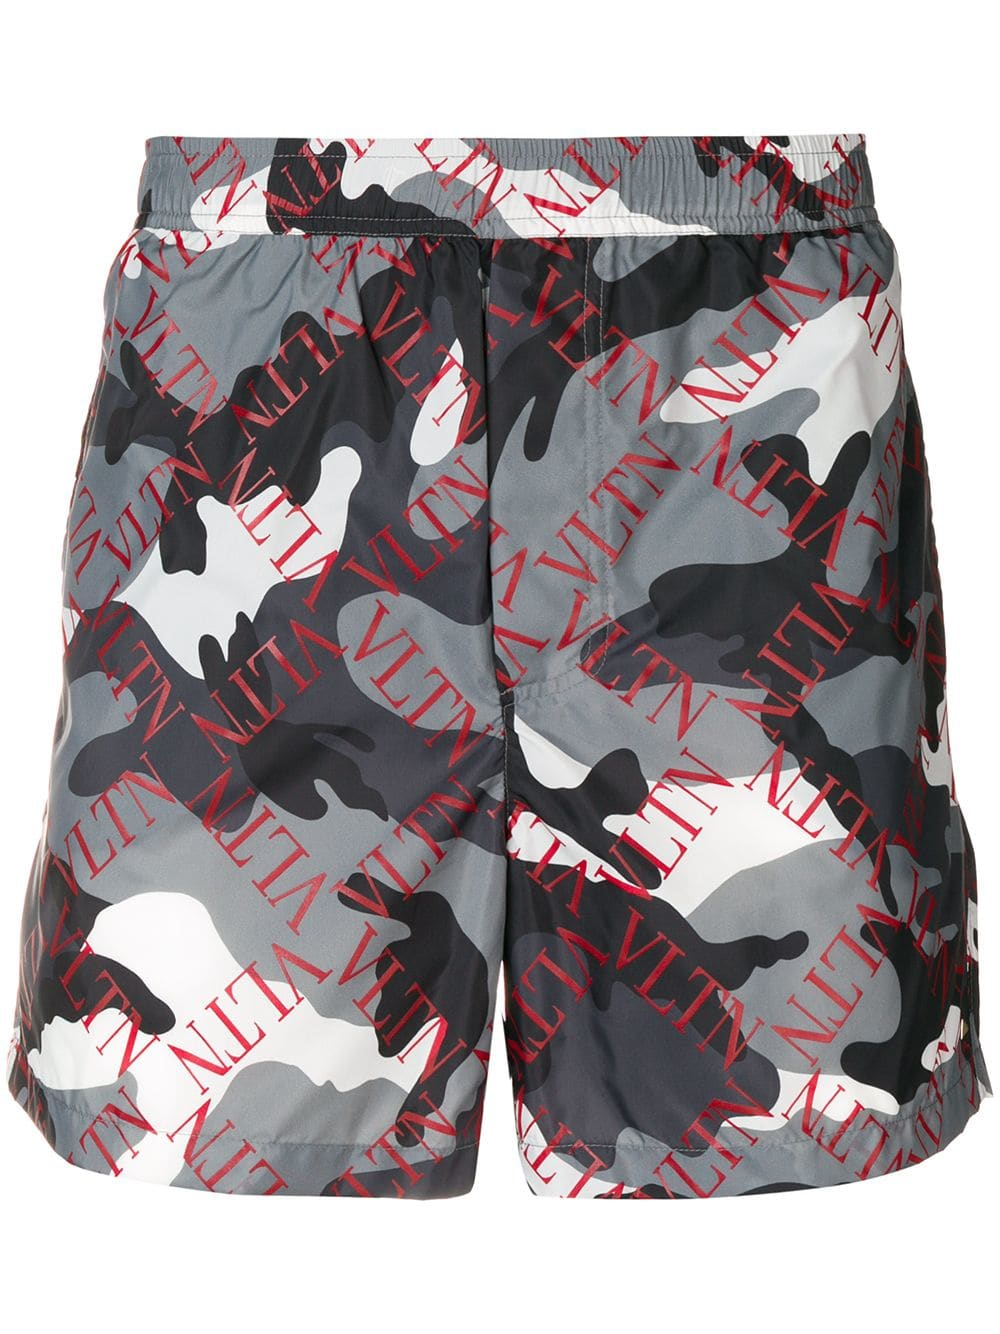 18cfa1d2f4db4 Valentino Valentino Vltn Logo Swim Shorts - Camou Grey/red ...